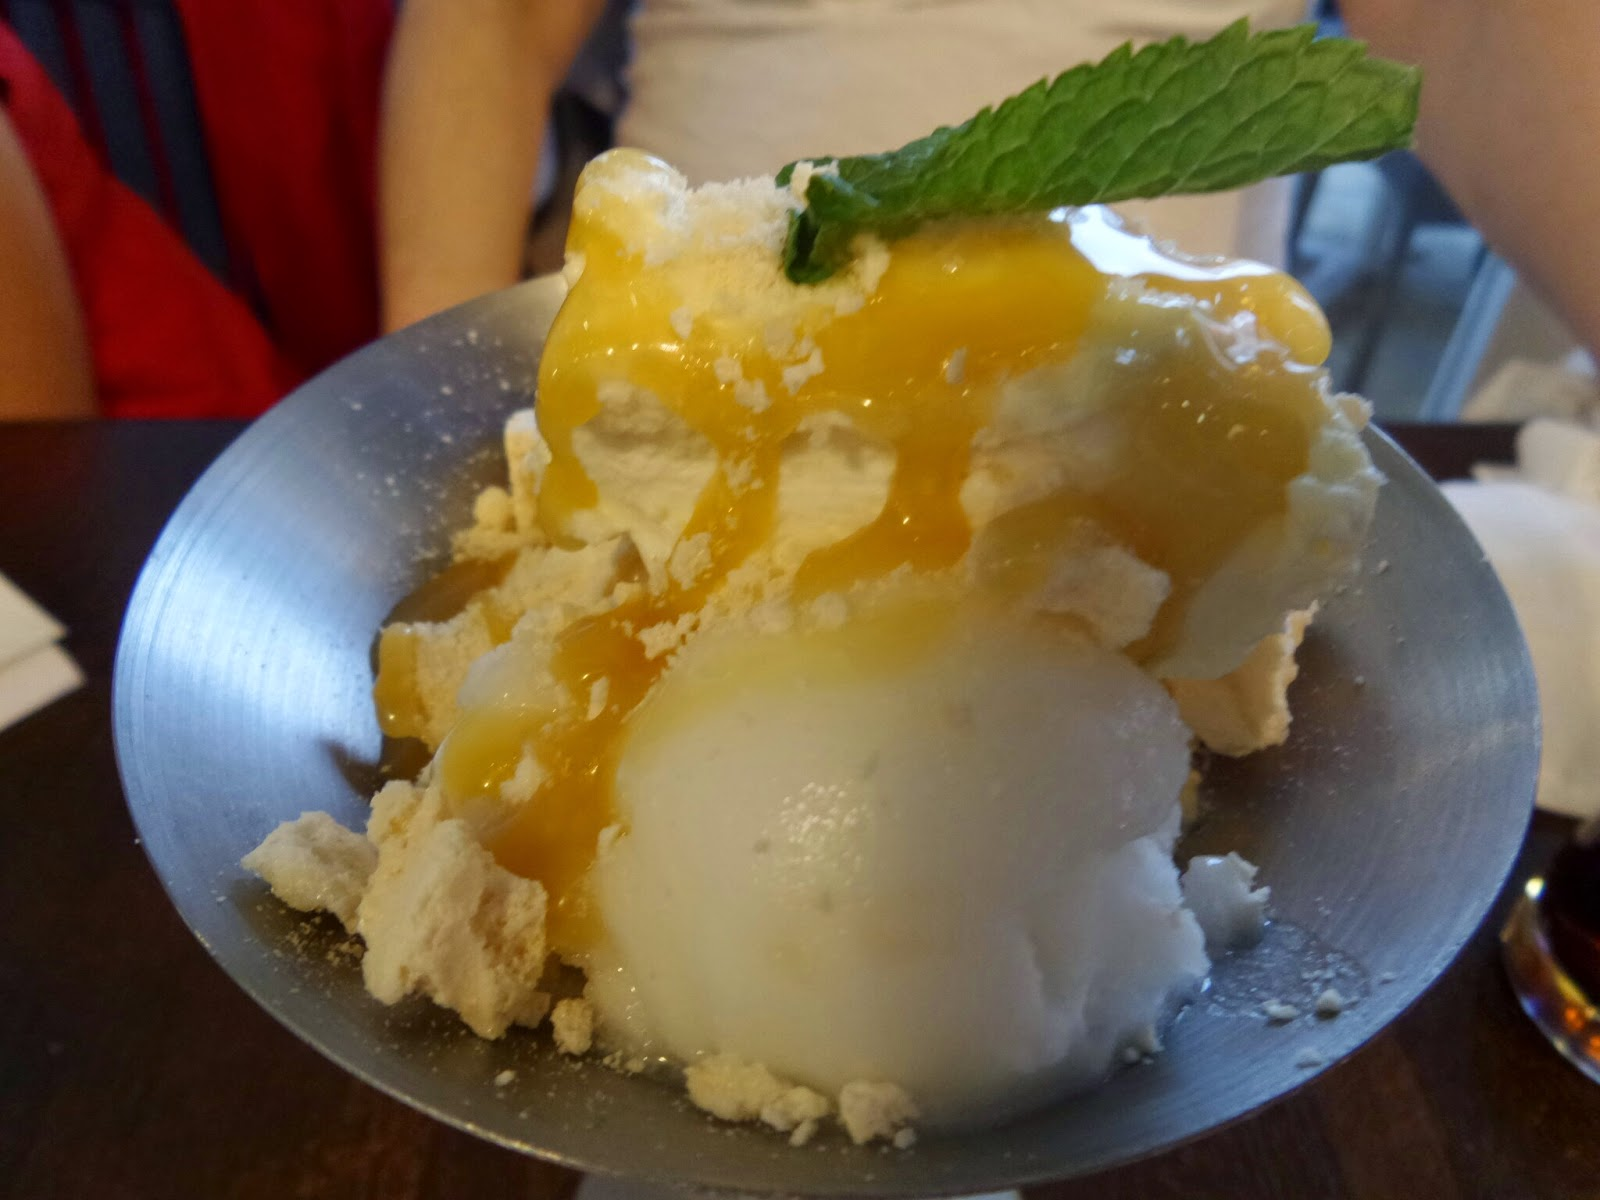 Zizzi's Lemon Meringue Sundae